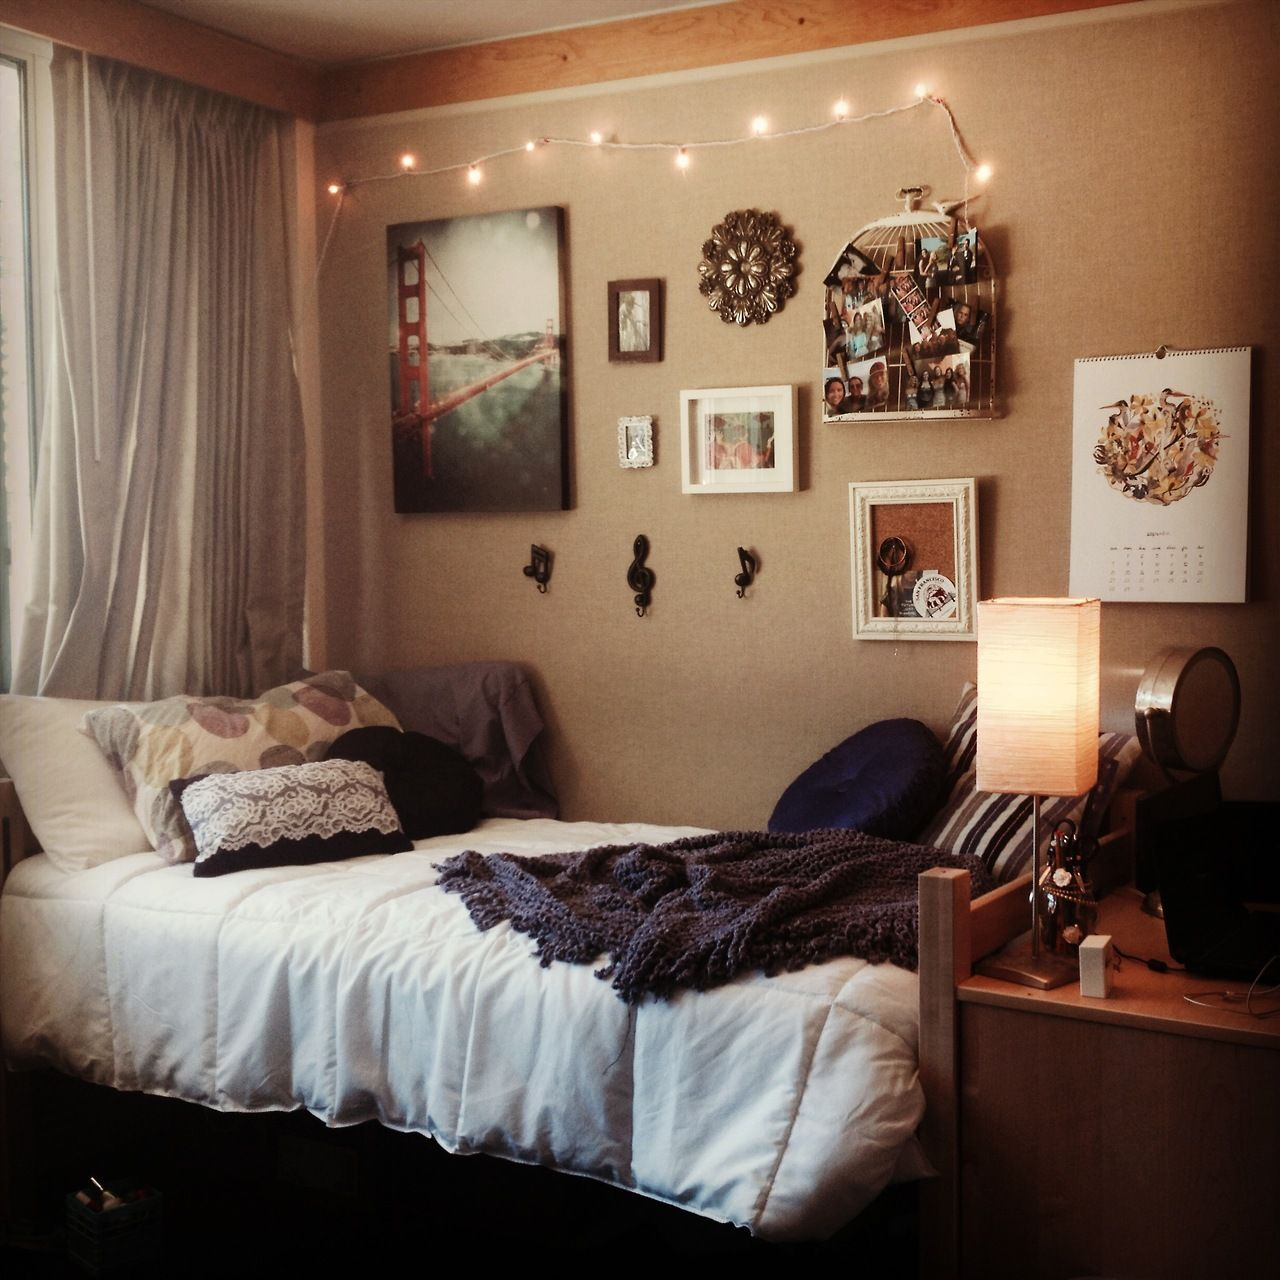 Bedroom Decorations Pinterest Dorm Room From University Of California Santa Barbara